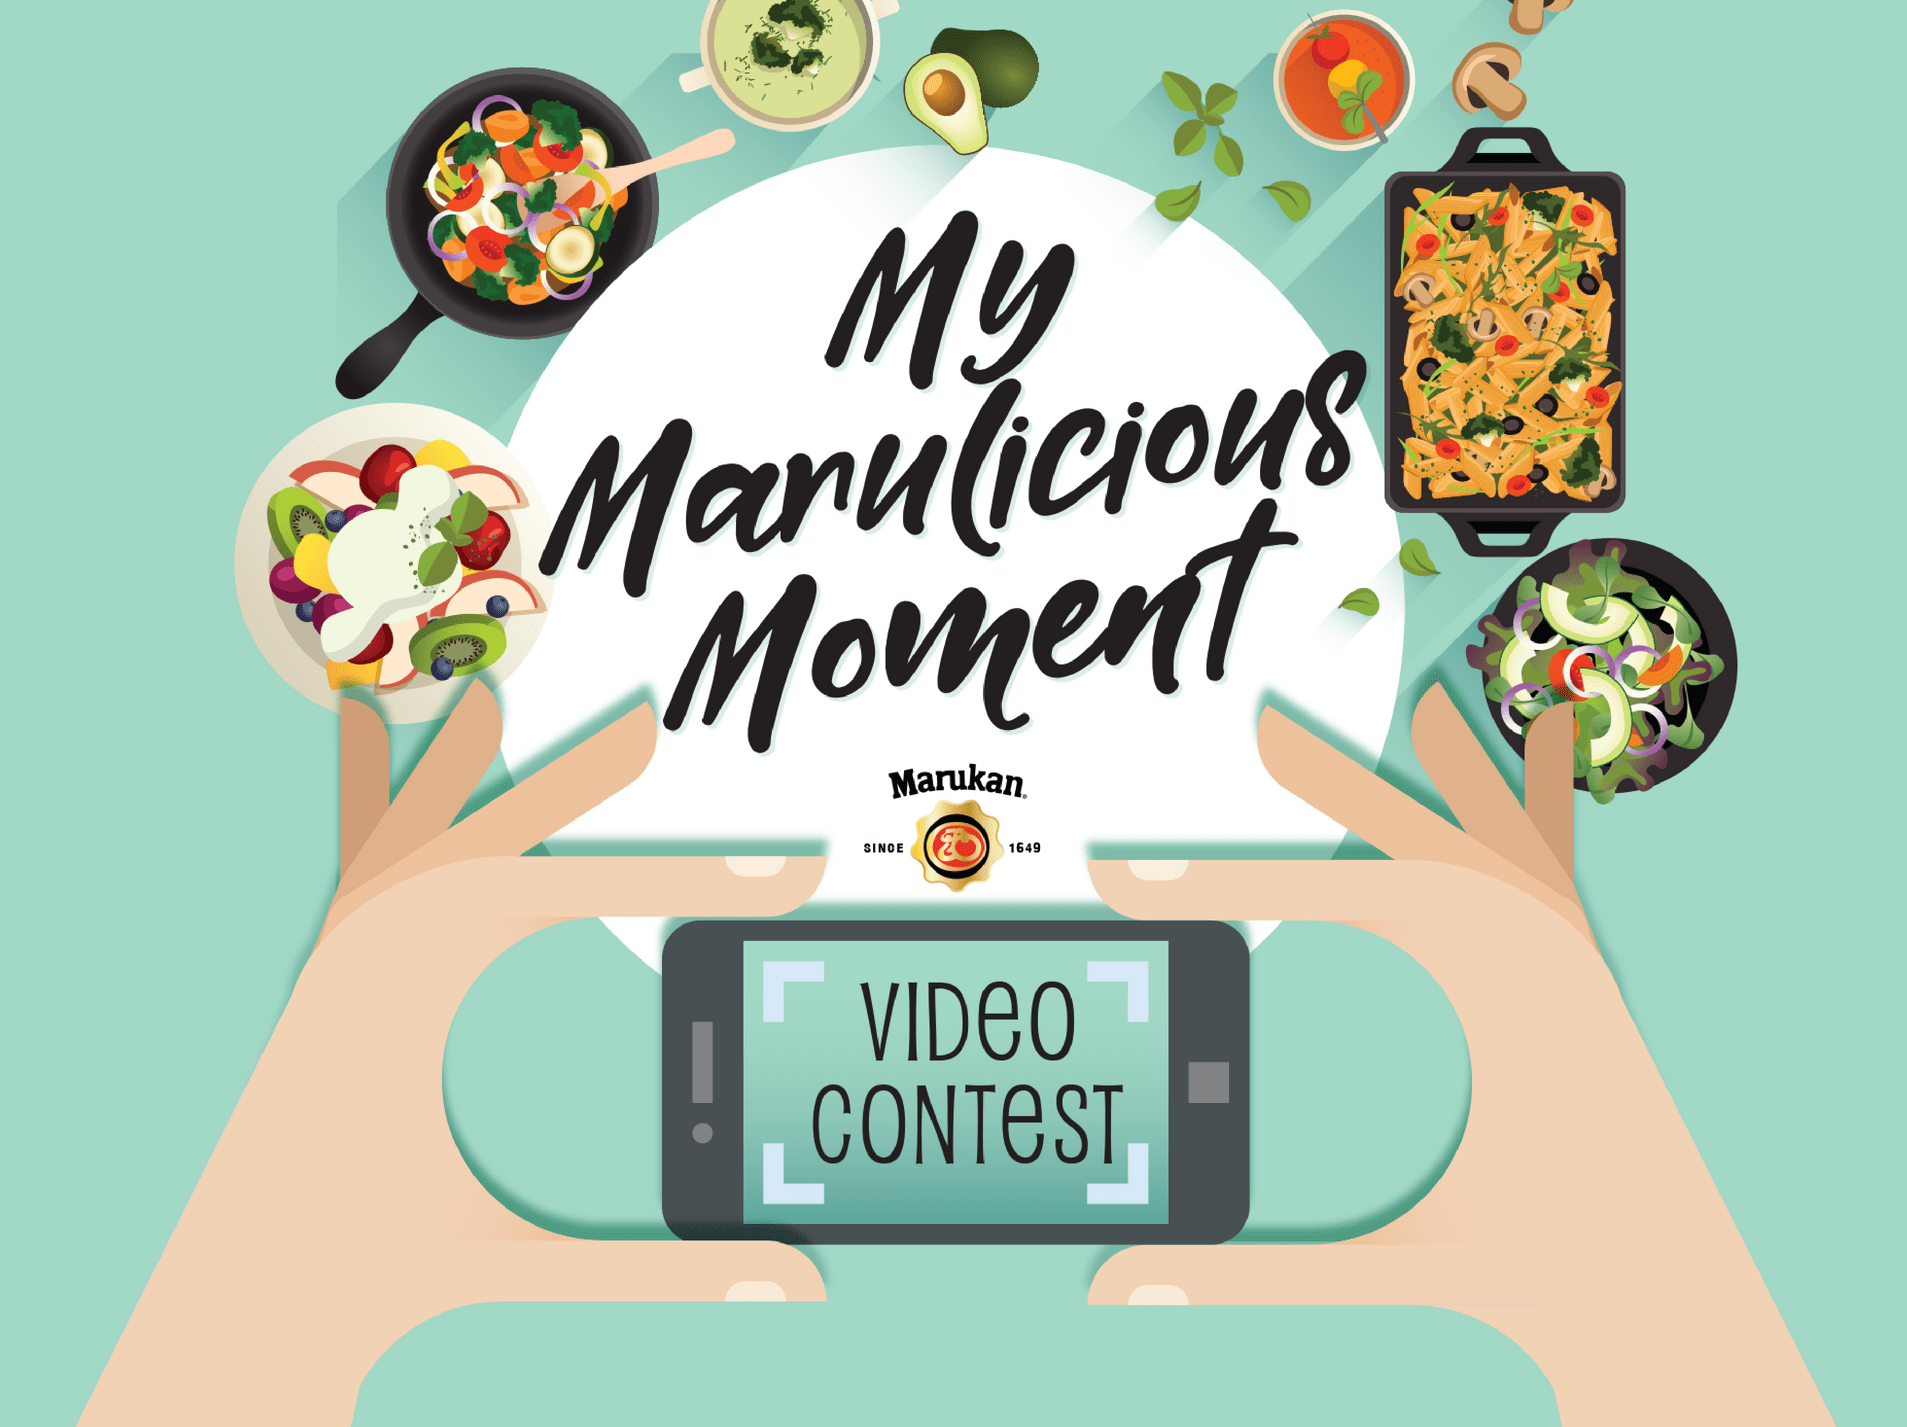 My Marulicious Moment Video Contest